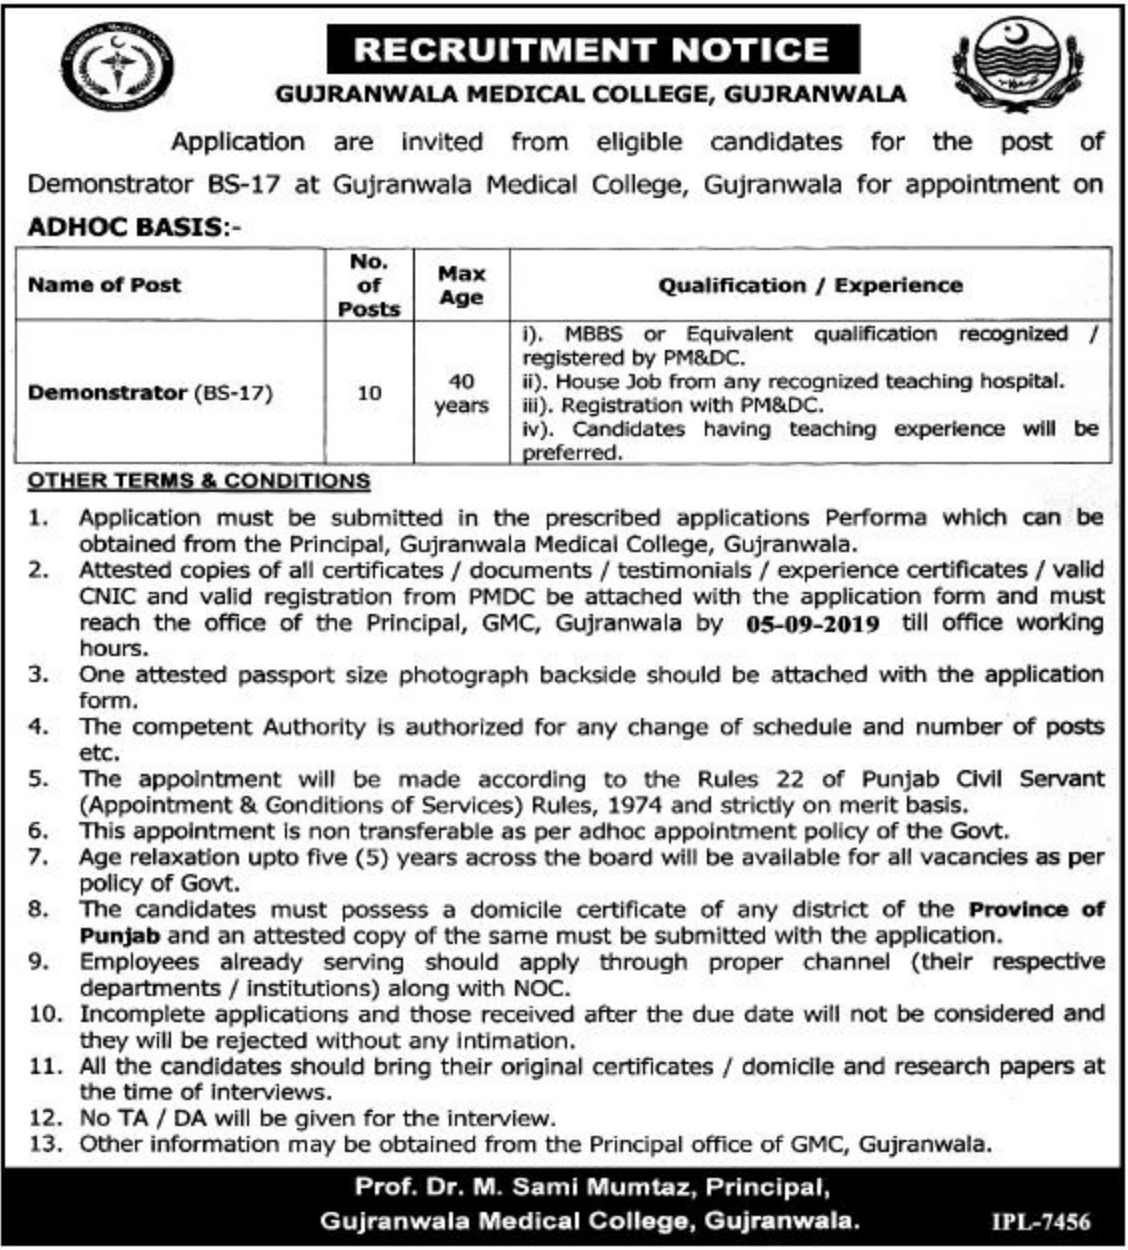 Gujranwala Medical College Jobs 2019 for Demonstrator